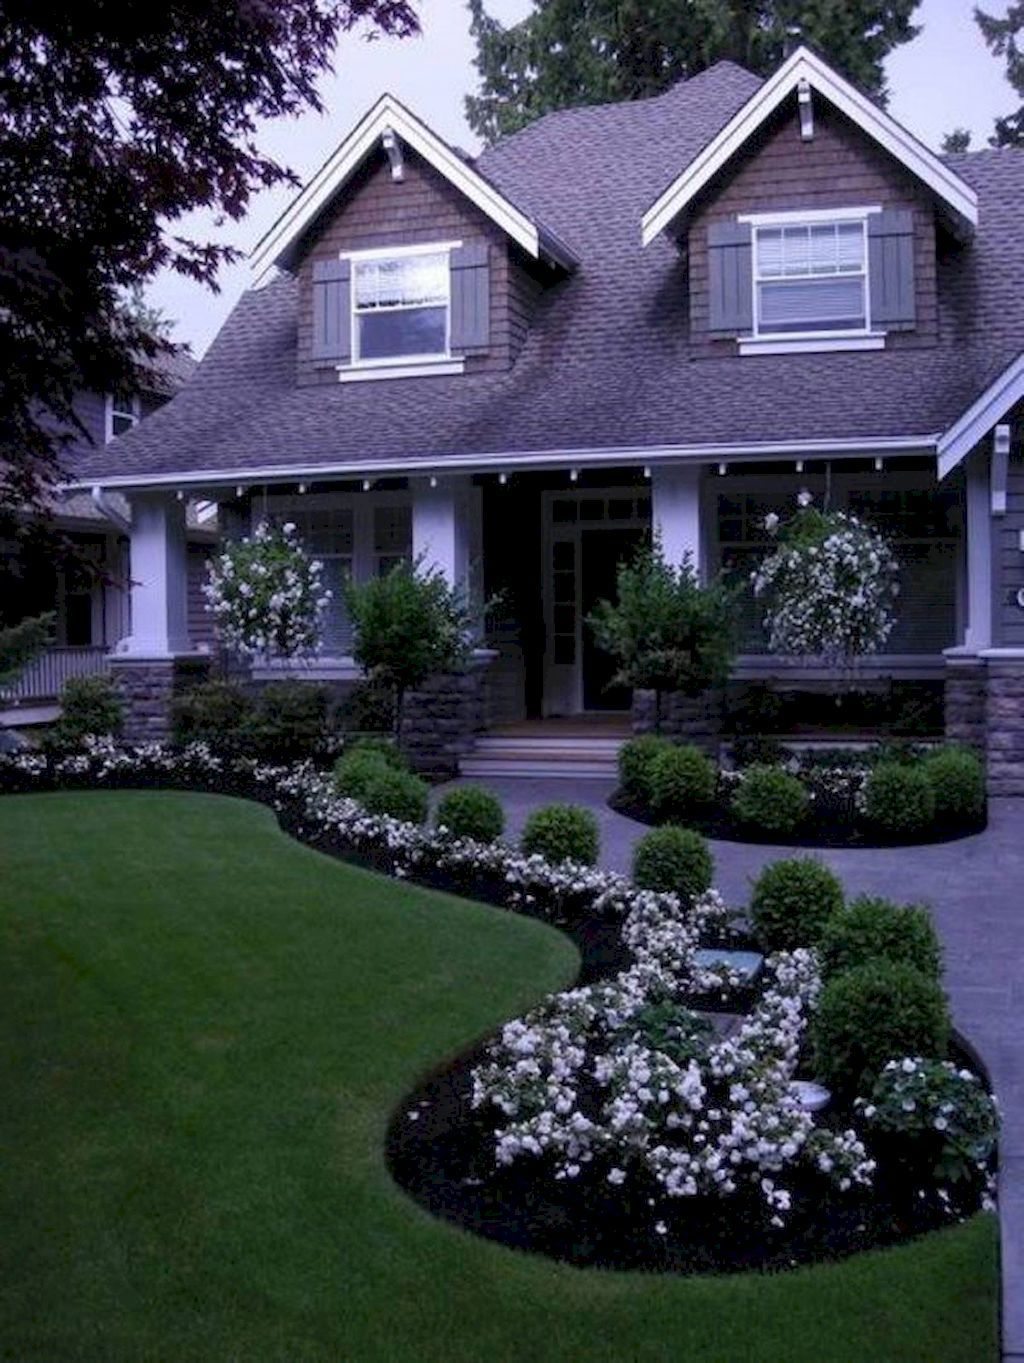 40 beautiful front yard landscaping ideas yard for Front landscape design